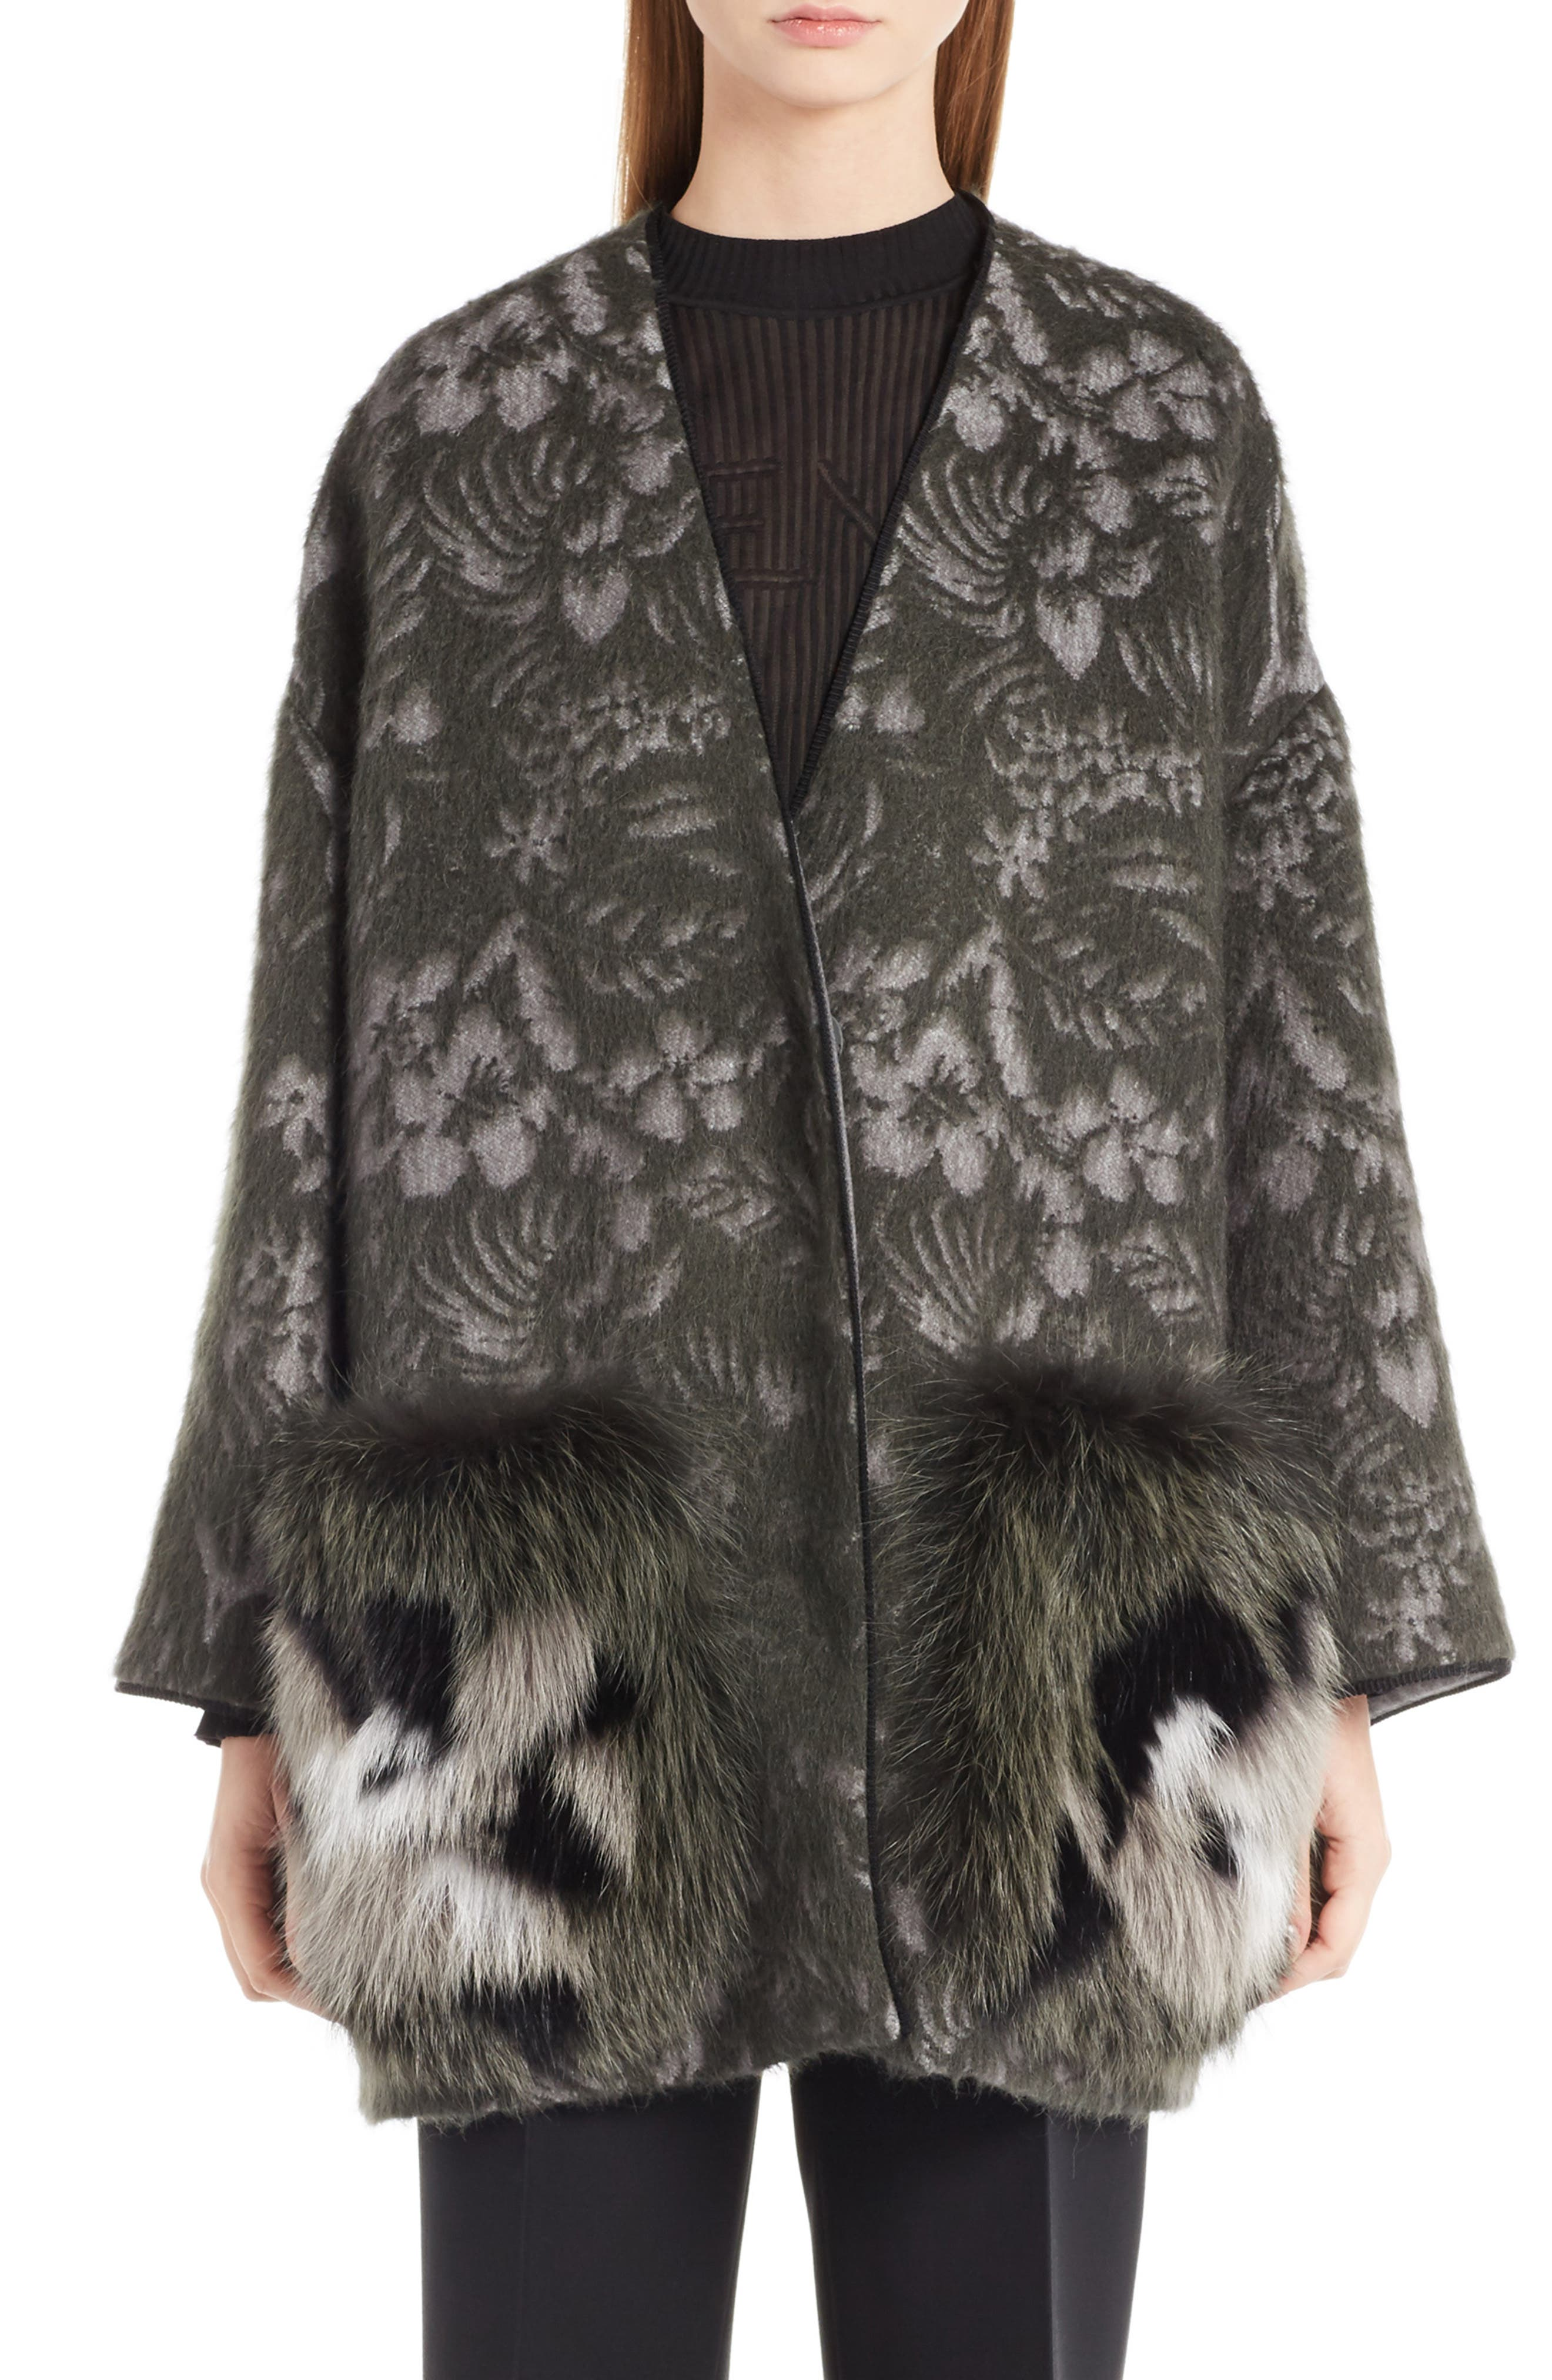 Fendi Floral Jacket with Genuine Fox Fur Pockets